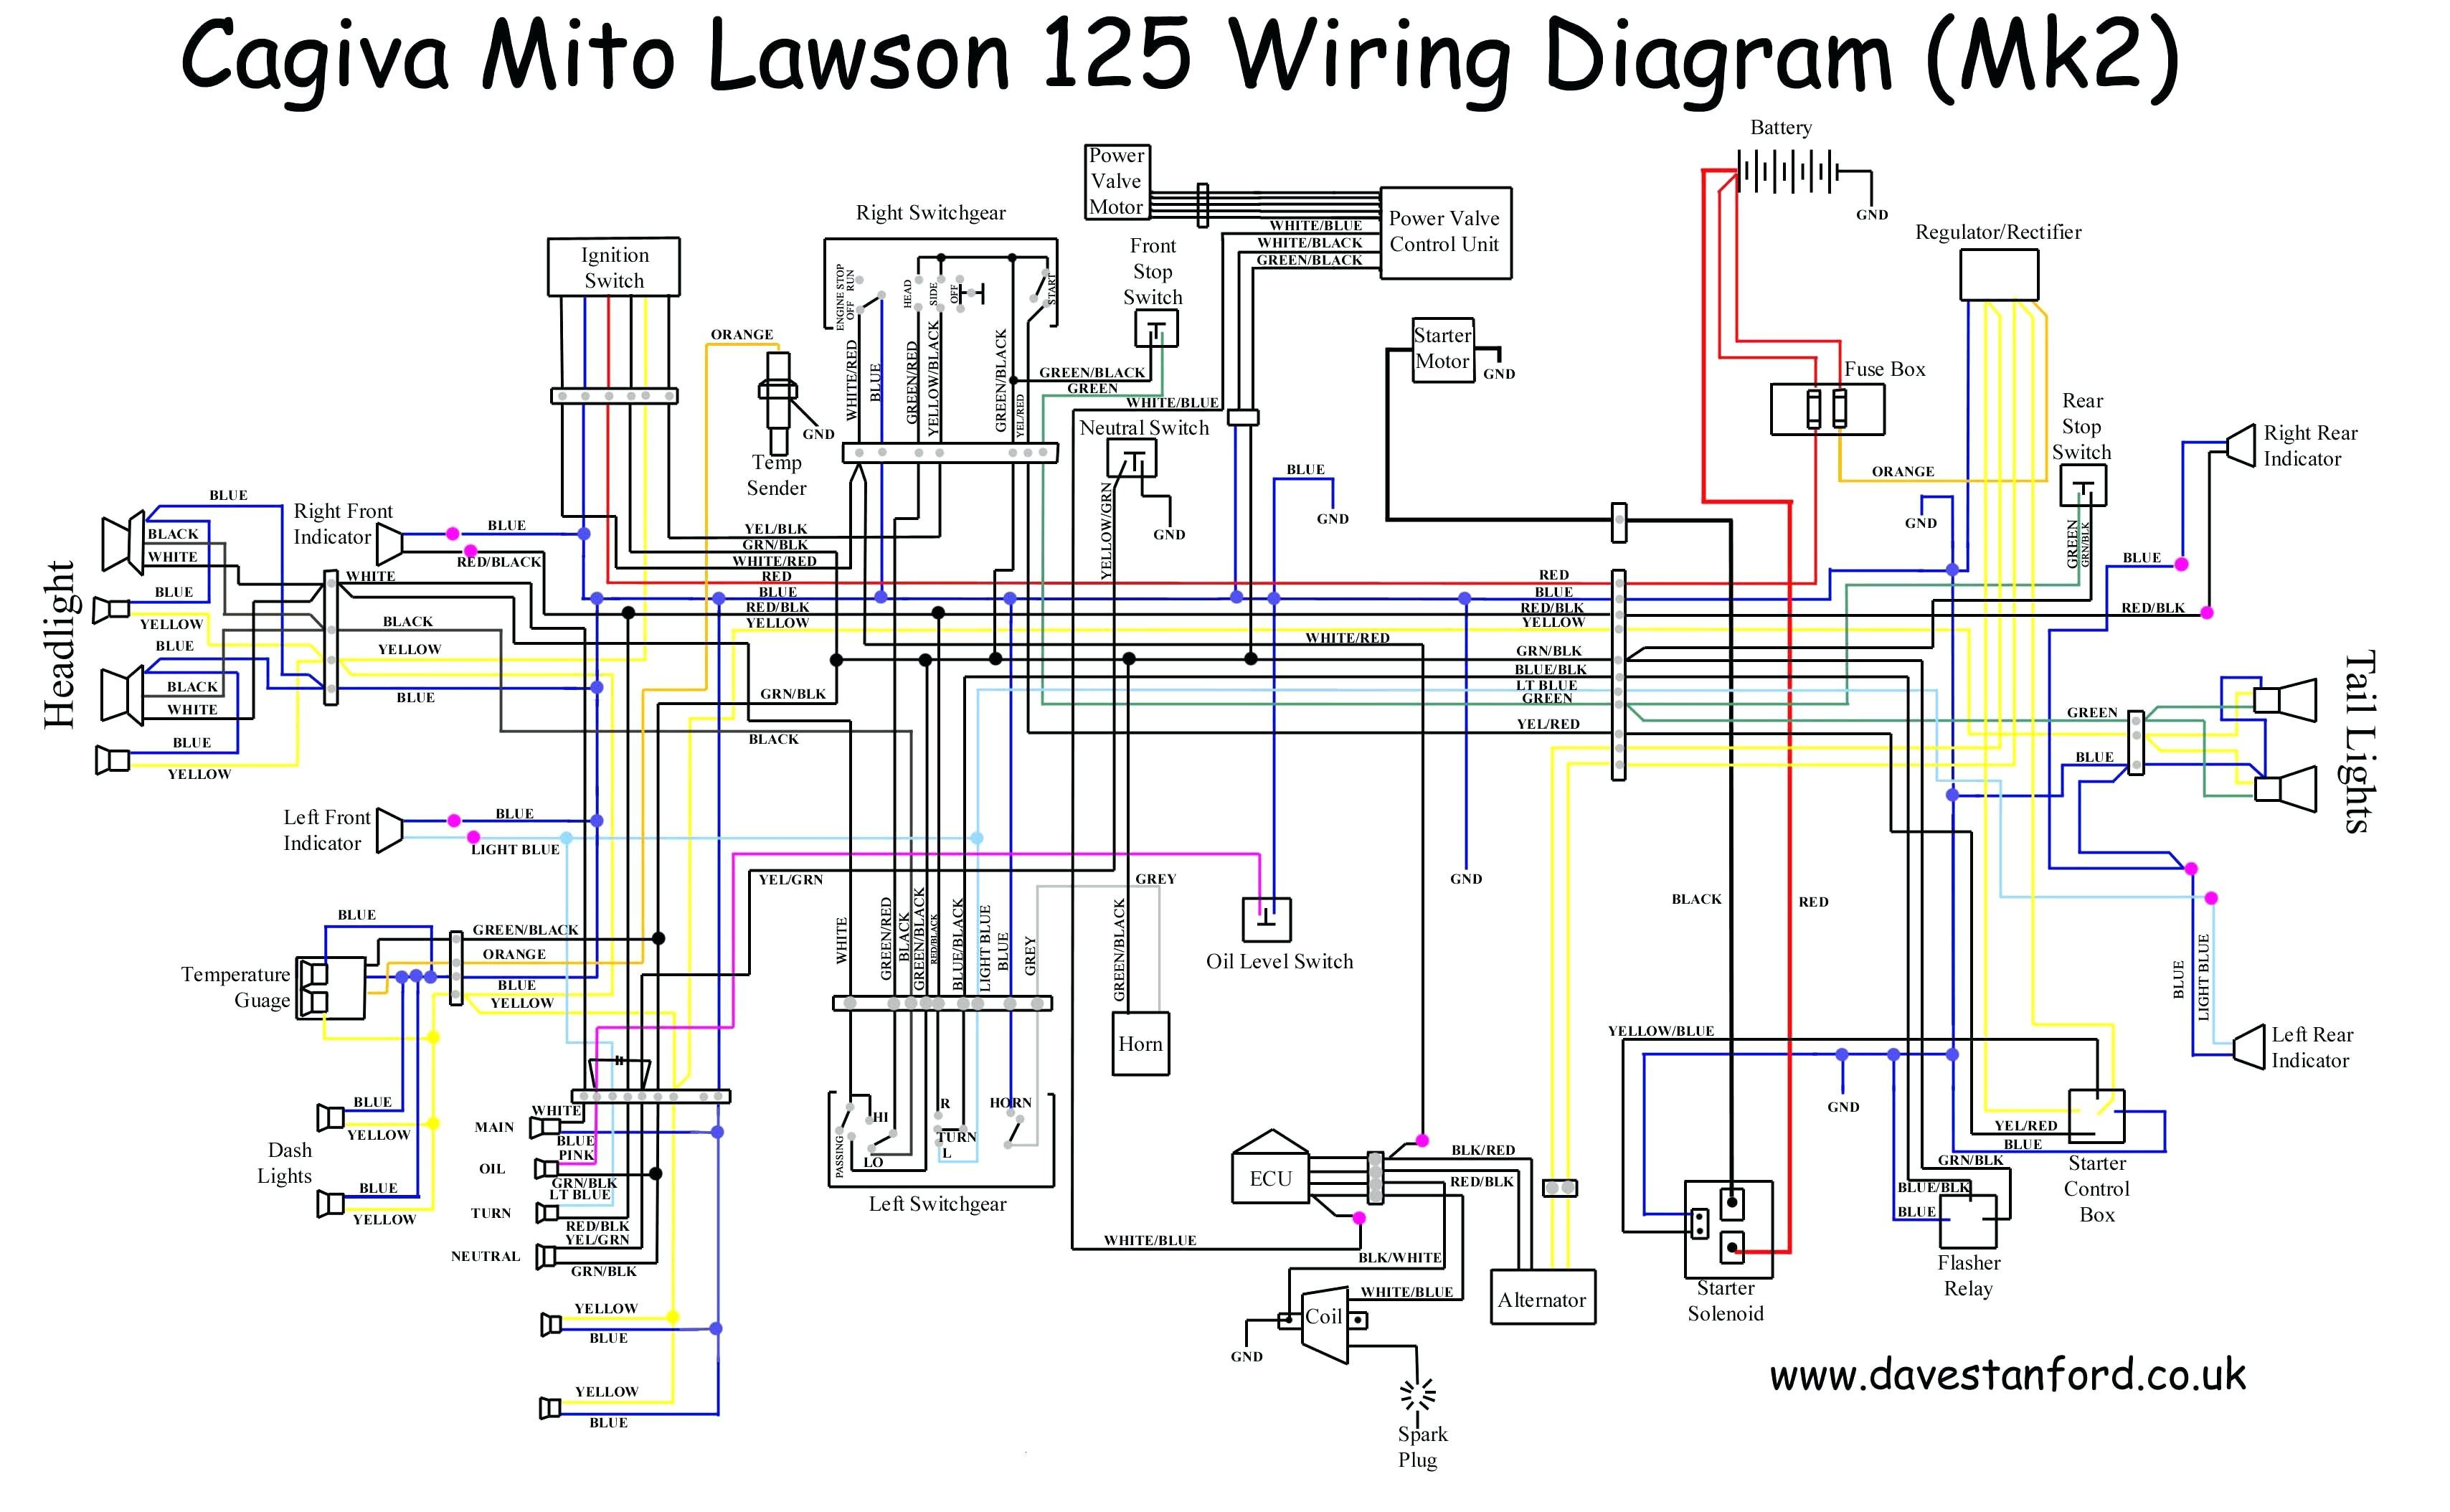 Xrm 110 Engine Diagram Honda Xrm 110 Wiring Diagram Download Canopi Of Xrm 110 Engine Diagram